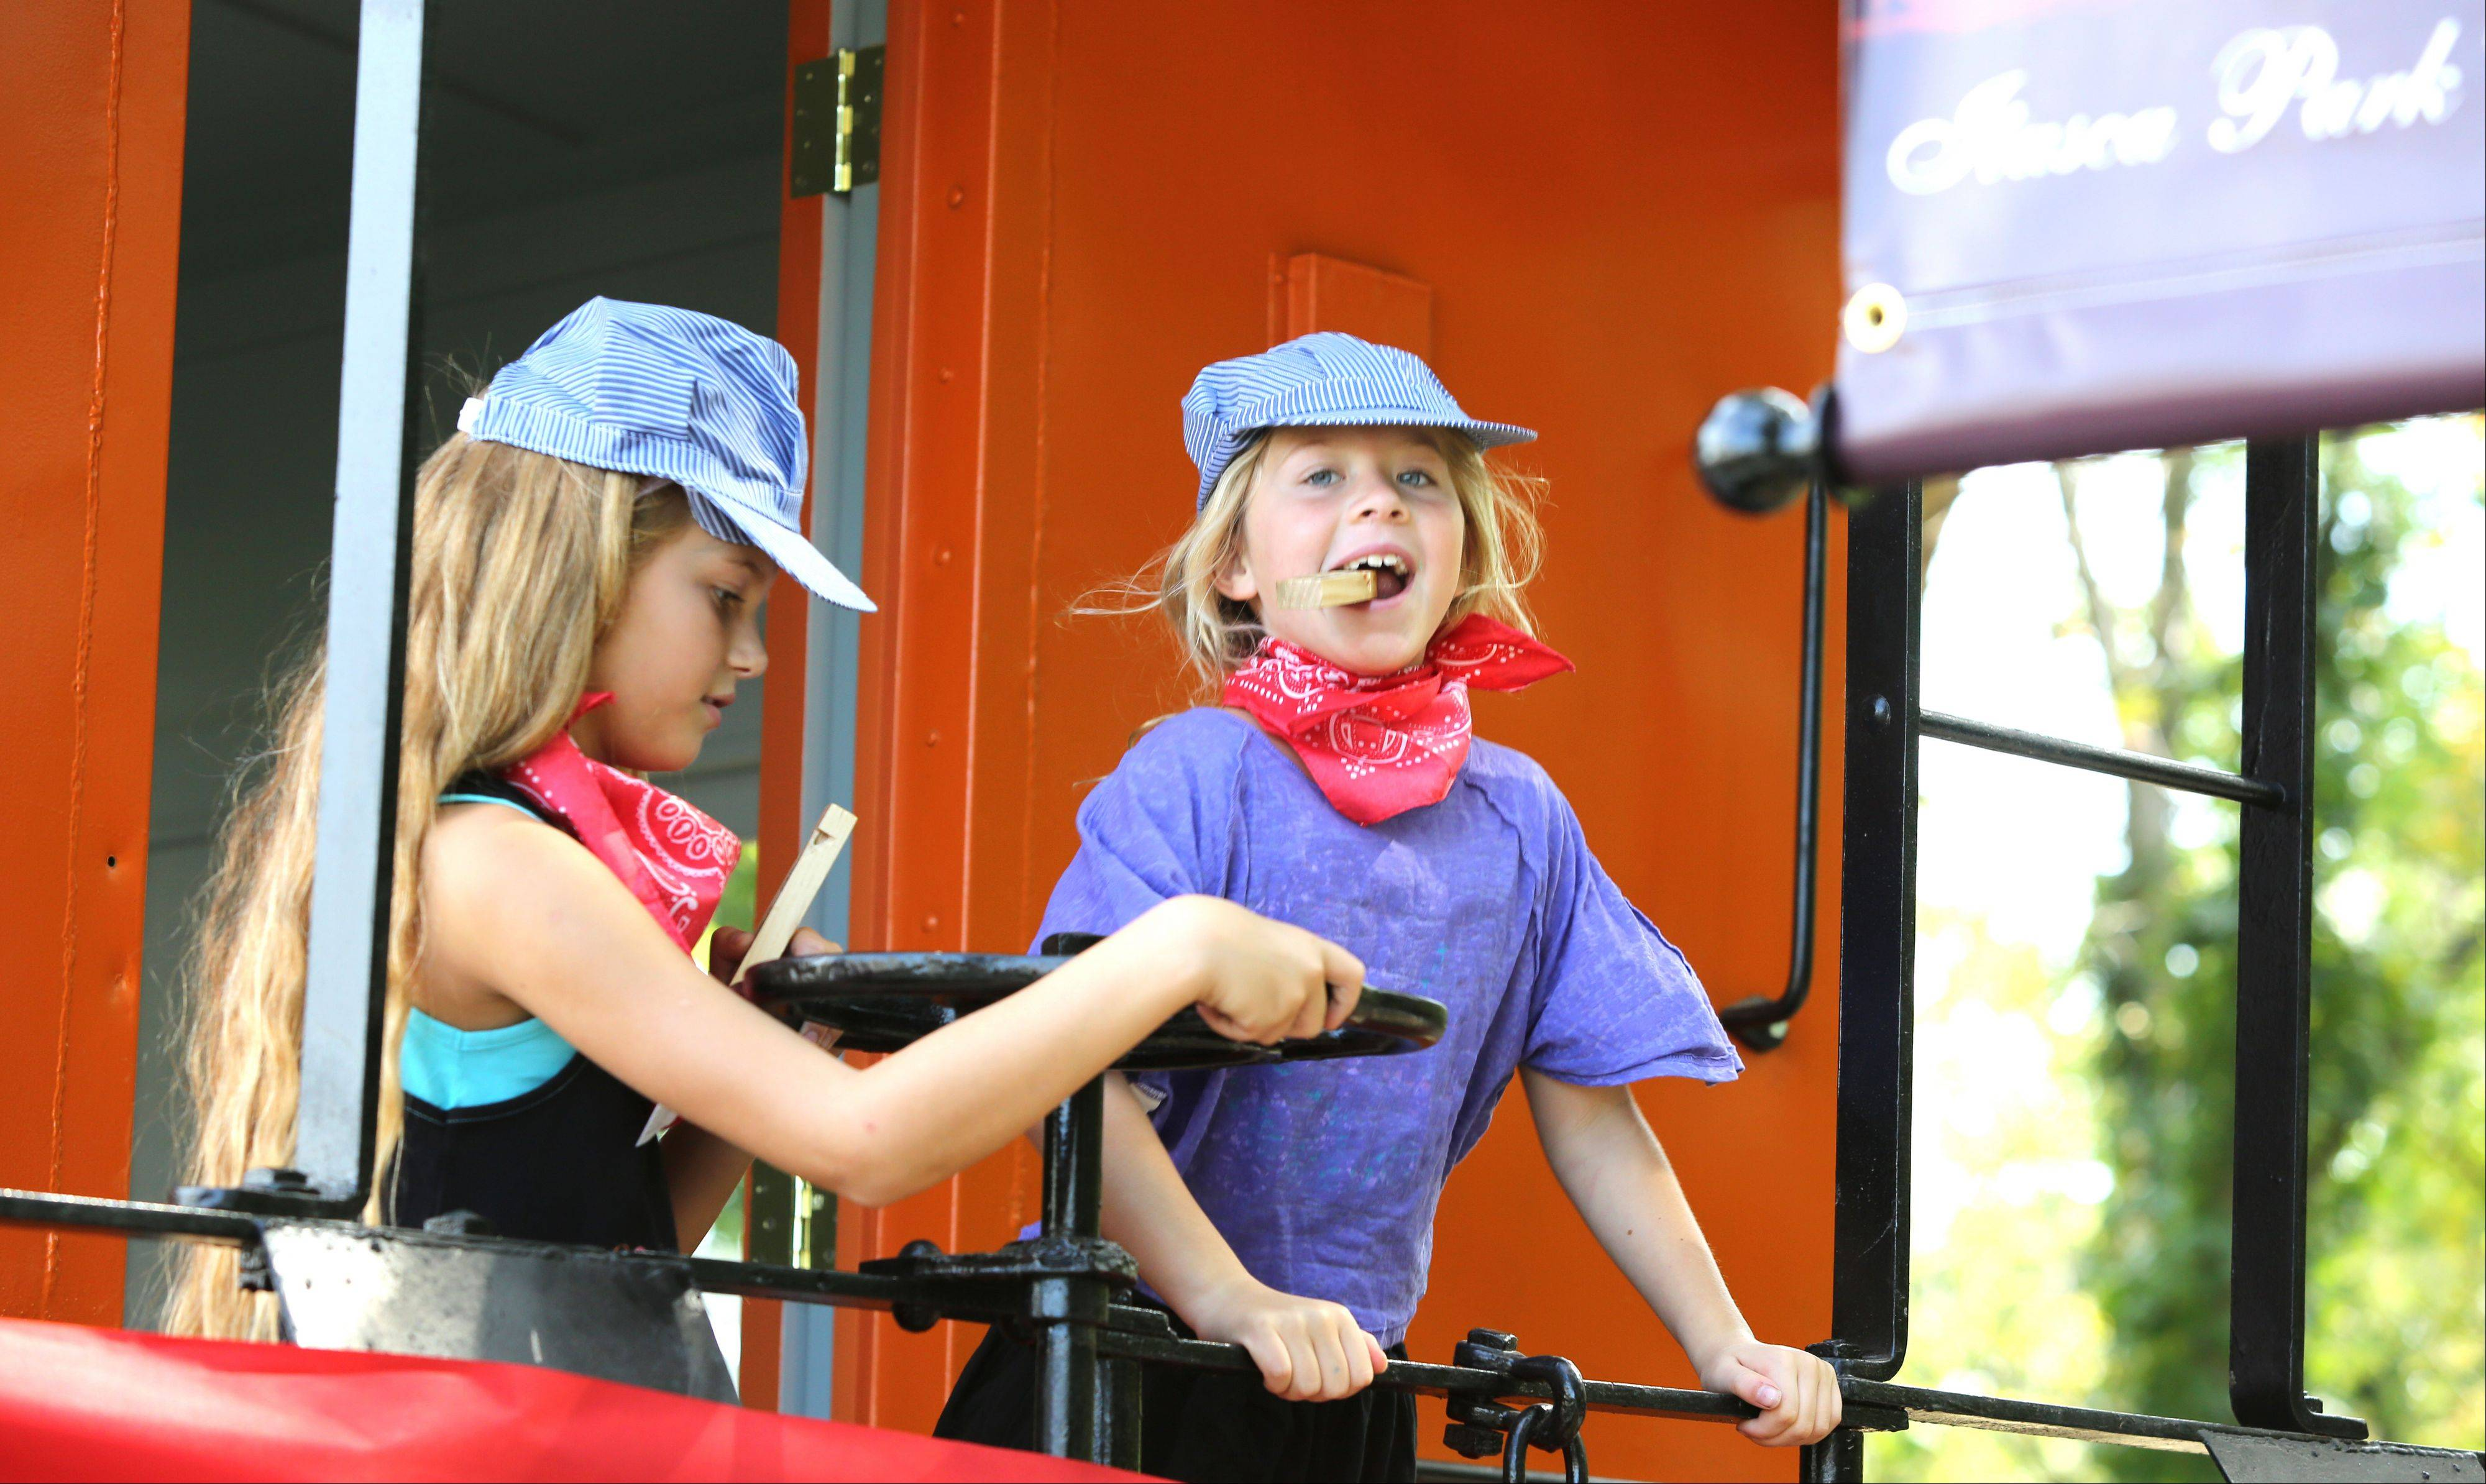 Mallory Leno, 8, left and Hannah Gelinas, 8, right, both of Arlington Heights, tour a 74-year-old newly restored caboose as the Itasca Historical Depot Museum hosts its grand reopening event.